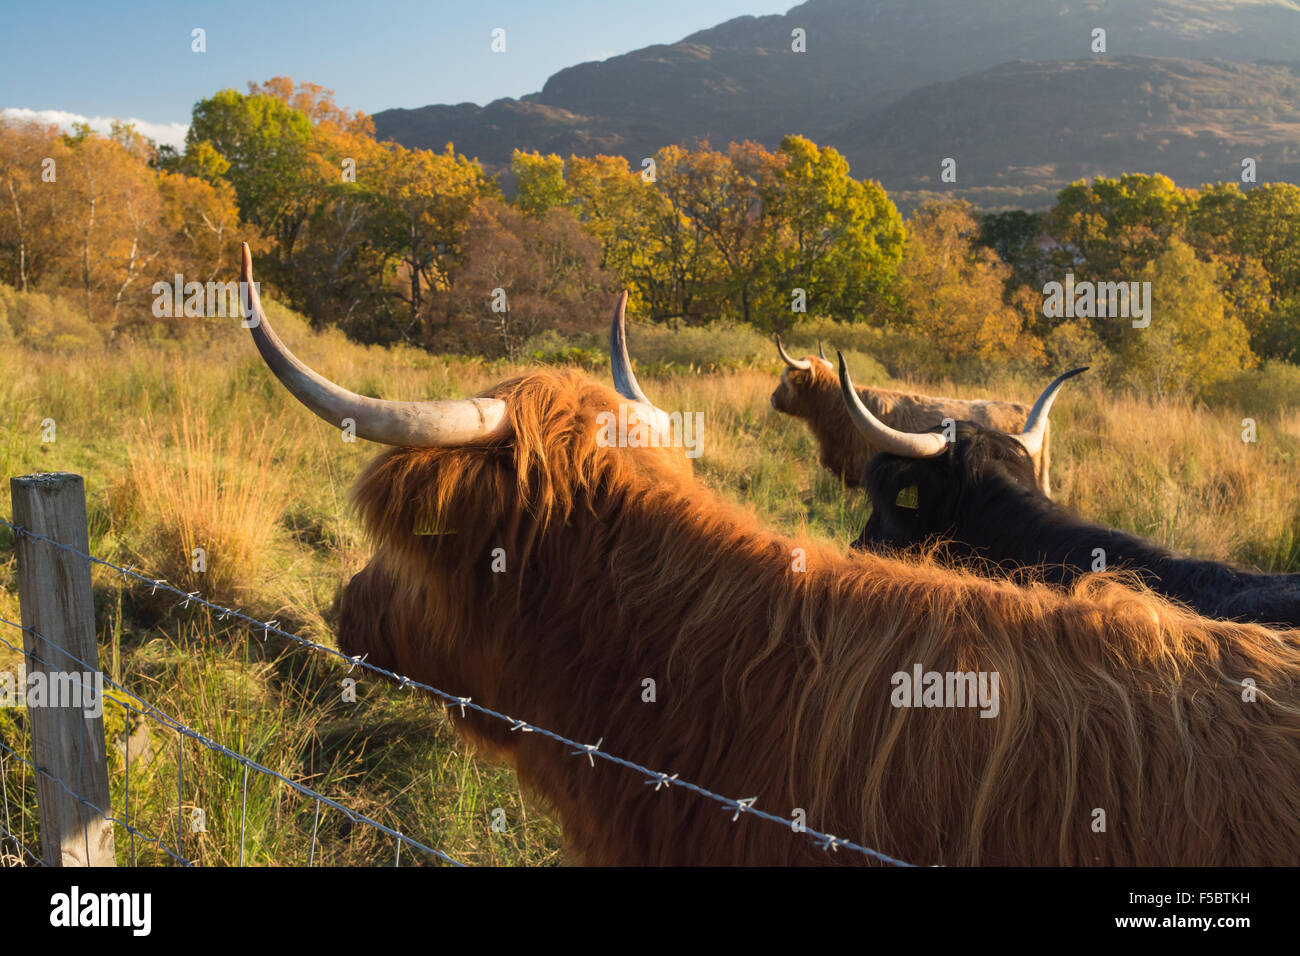 Loch Katrine, Scotland, UK - 1 November 2015: UK weather: the coats of the highland cattle match the colours of - Stock Image